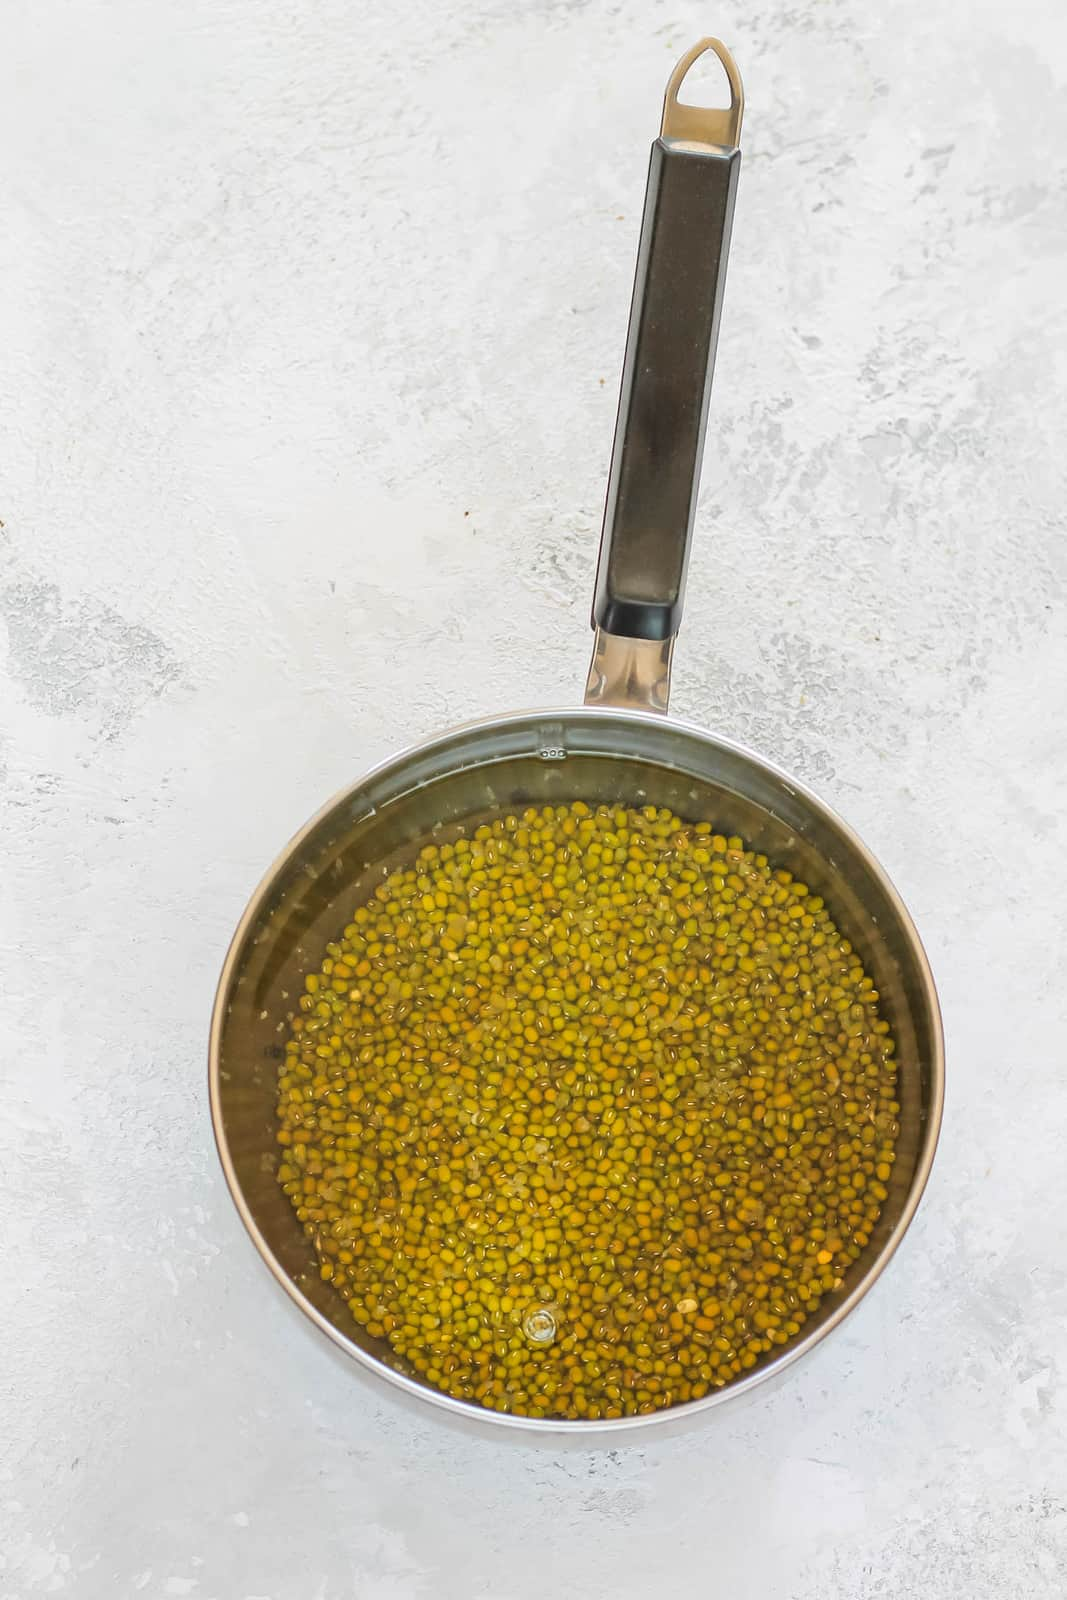 mung beans and water in a metal pot